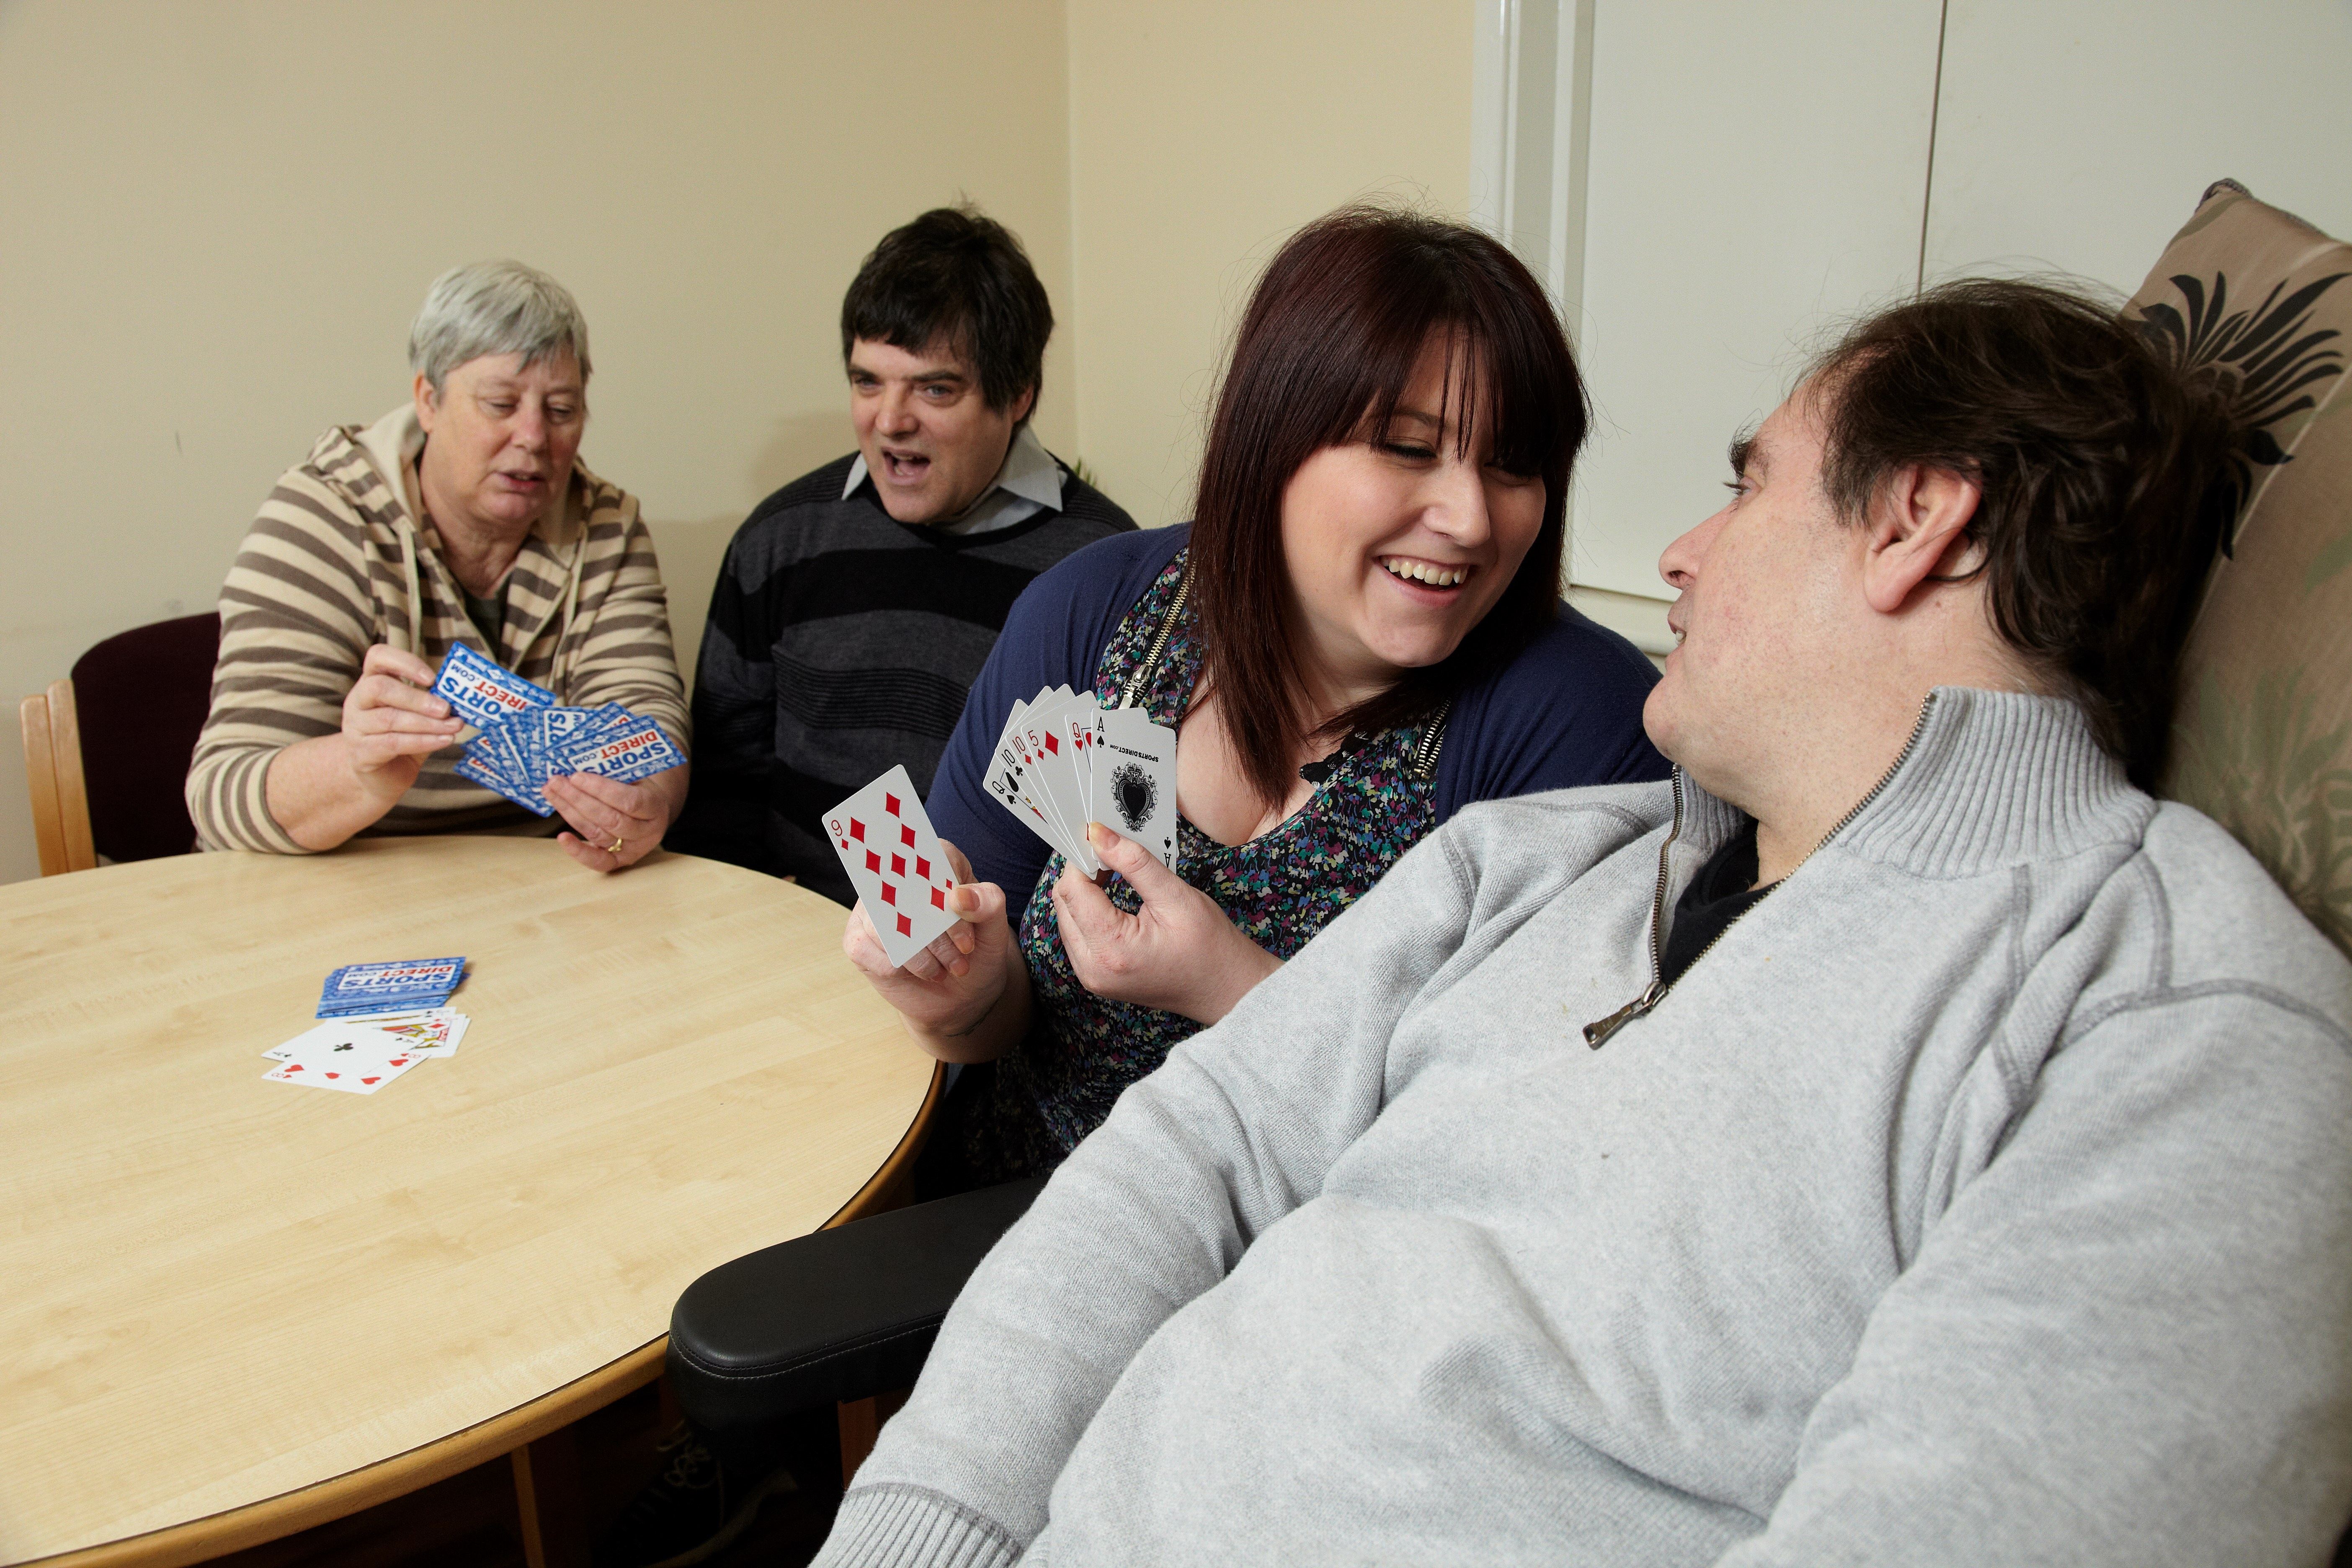 service users and support workers playing games in the lounge at Bristol Road